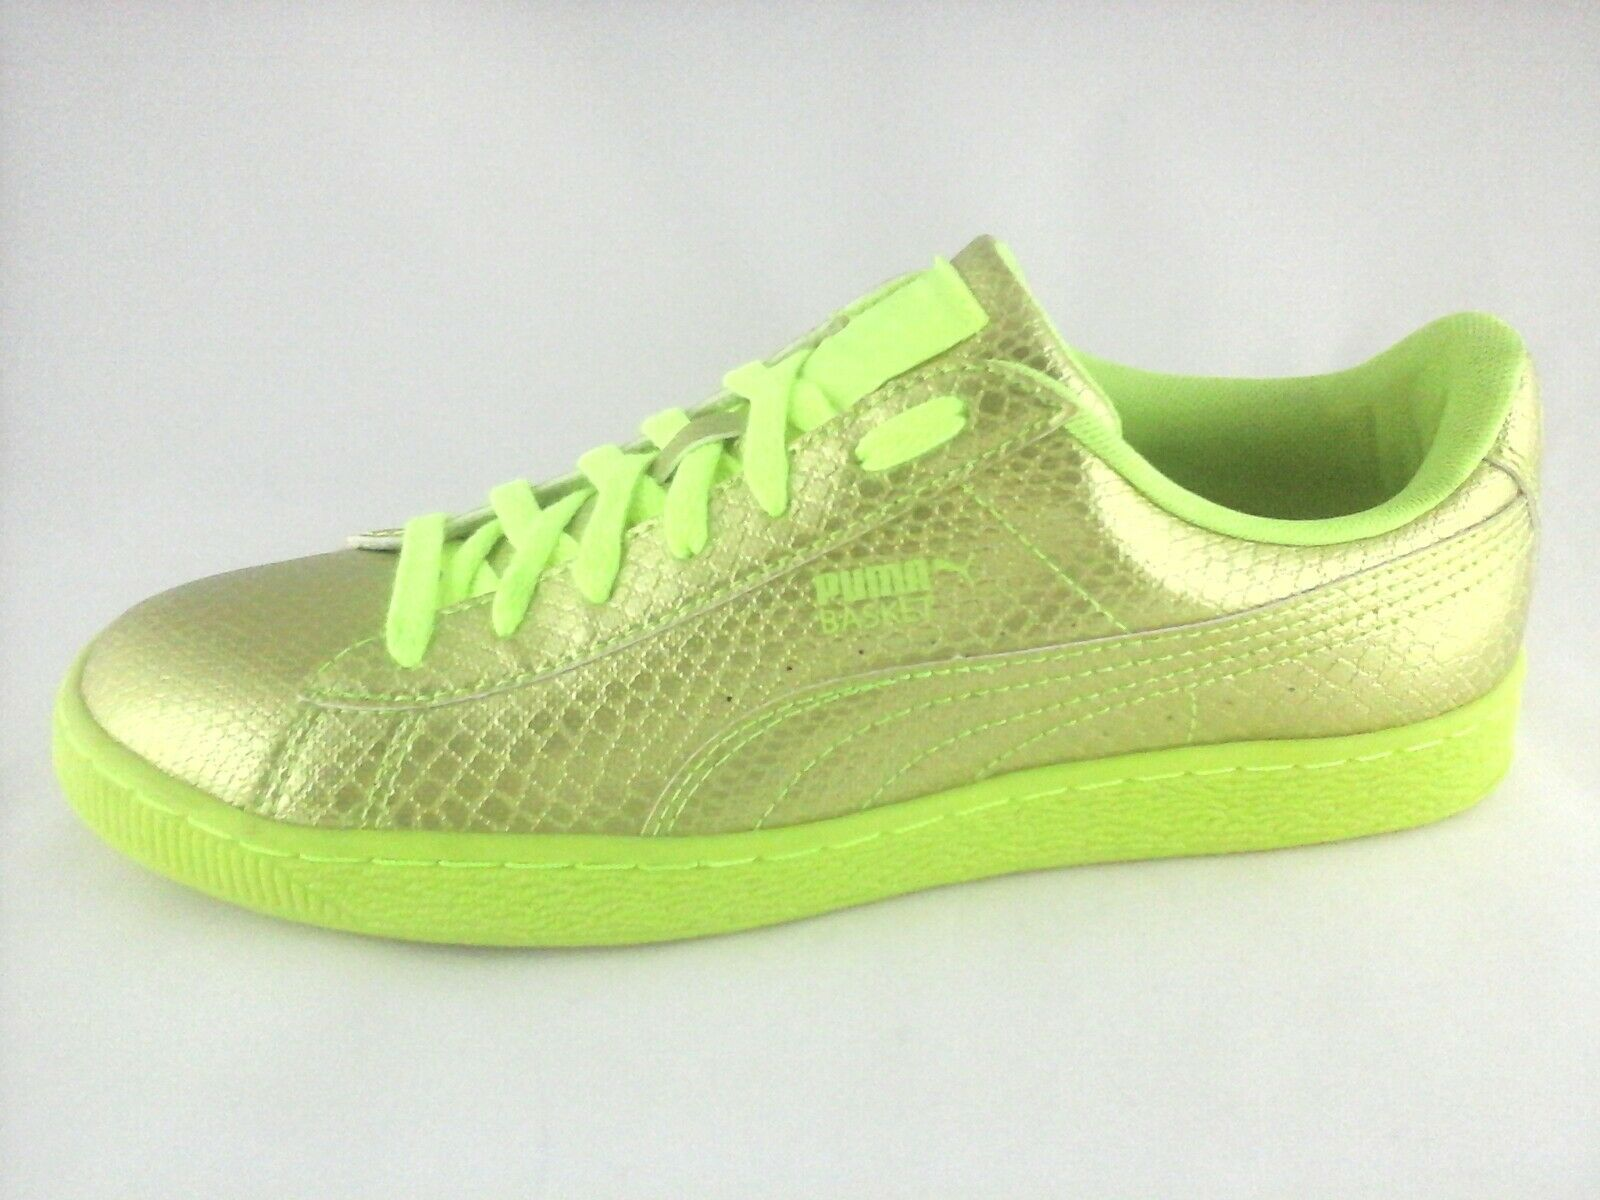 Puma Womens Animal Print Metallic Bright Green Fashion Shoes US 10